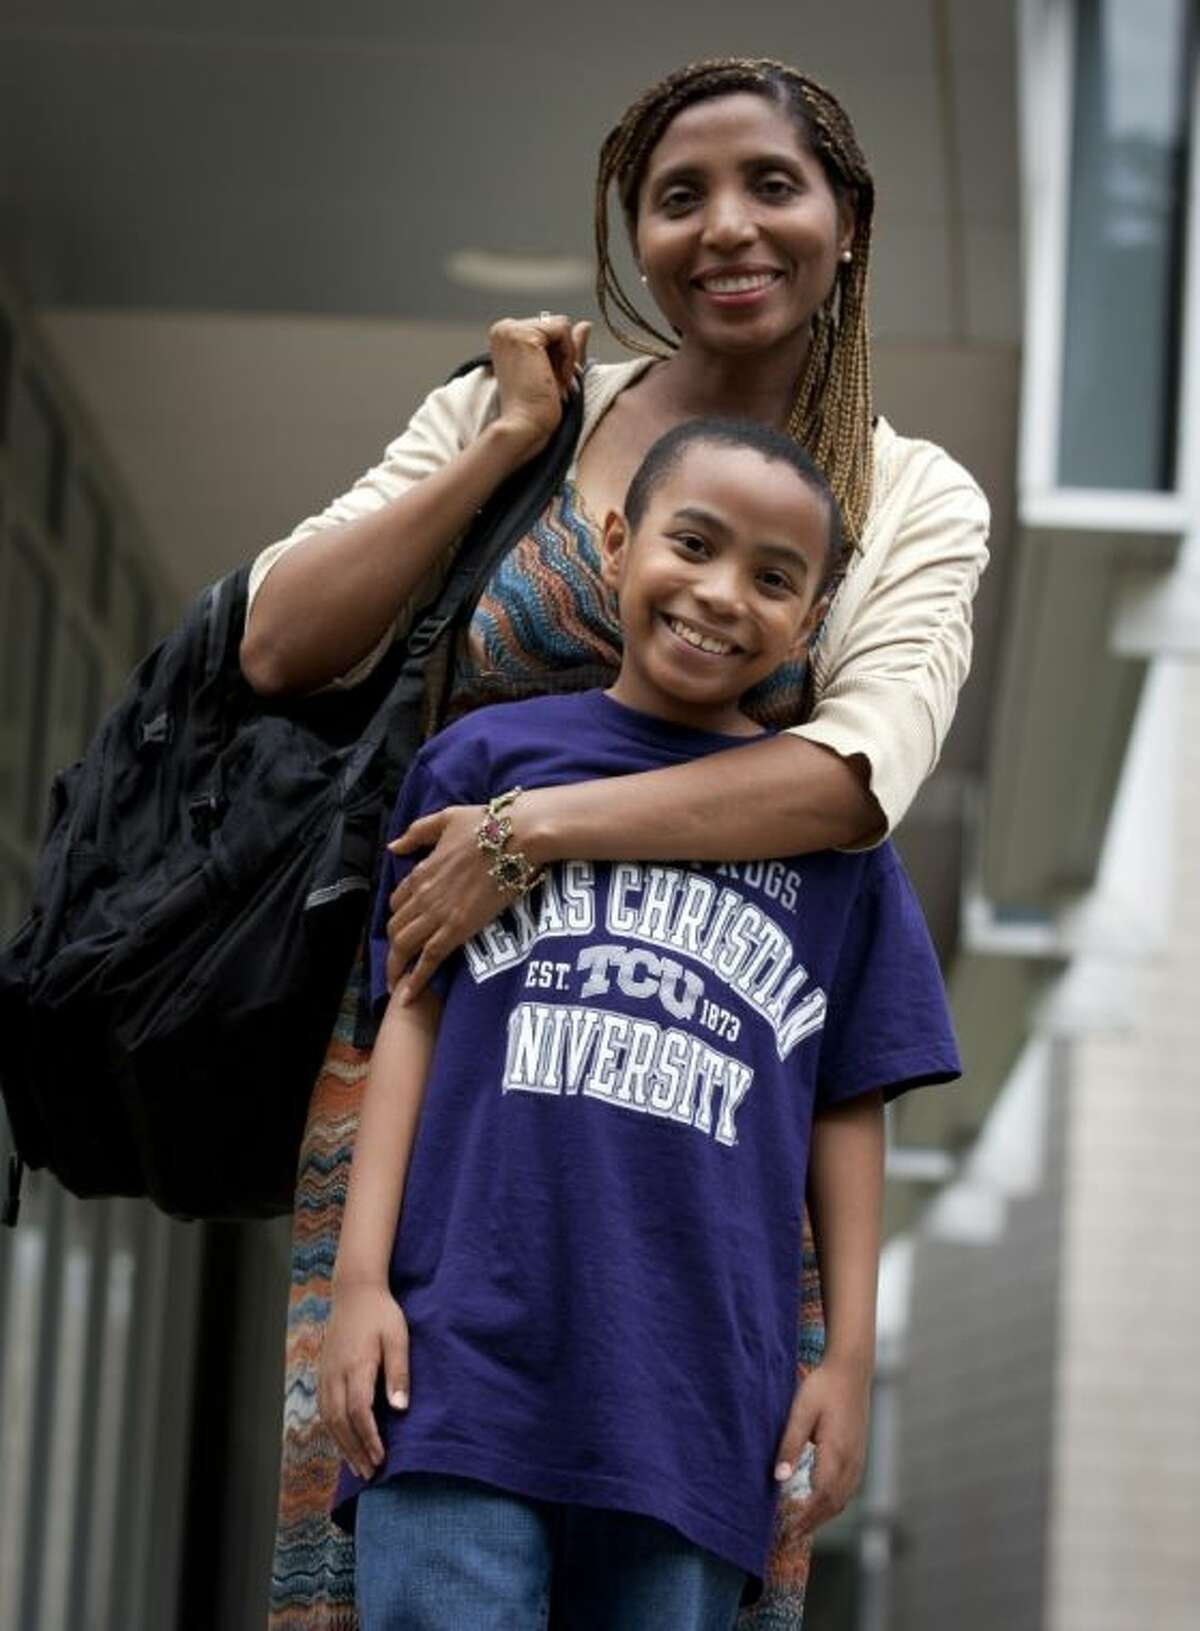 In this Tuesday photo, Carson Huey-You, 11, who is studying quantum physics at TCU, poses for a photo with his mother, Claretta Huey-You, in Fort Worth. He became TCU's youngest student ever when classes started last week. The physics major says he plans to be a quantum physicist.